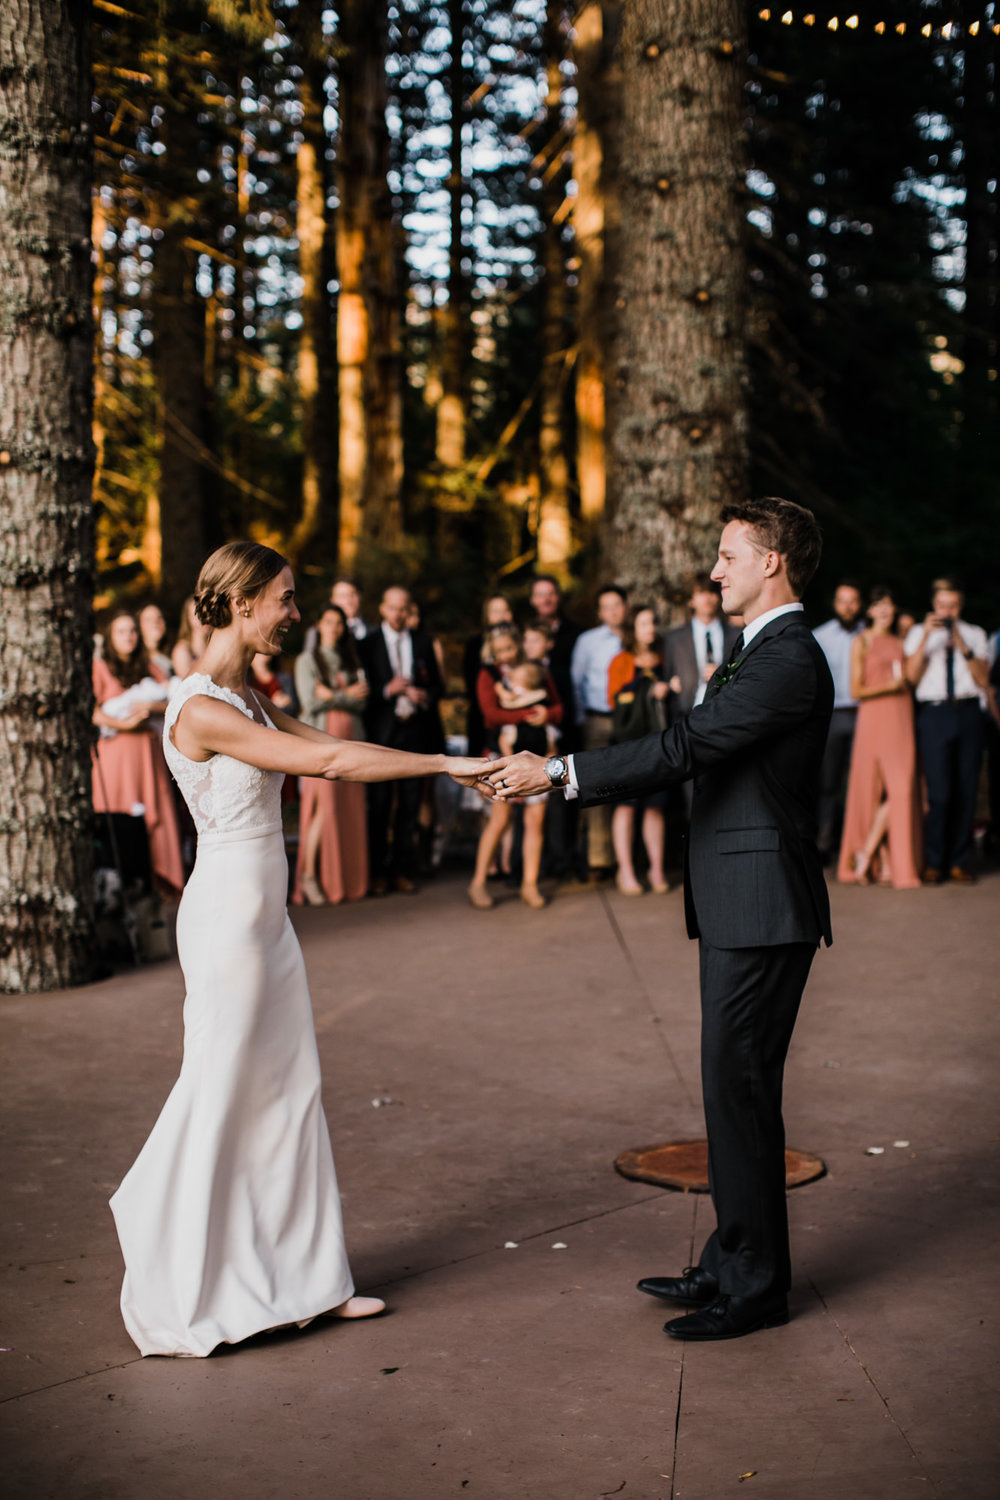 jena + kyler's treehouse wedding | outdoor reception under the stars | washington adventure wedding photographer | the hearnes adventure wedding photography | www.thehearnes.com